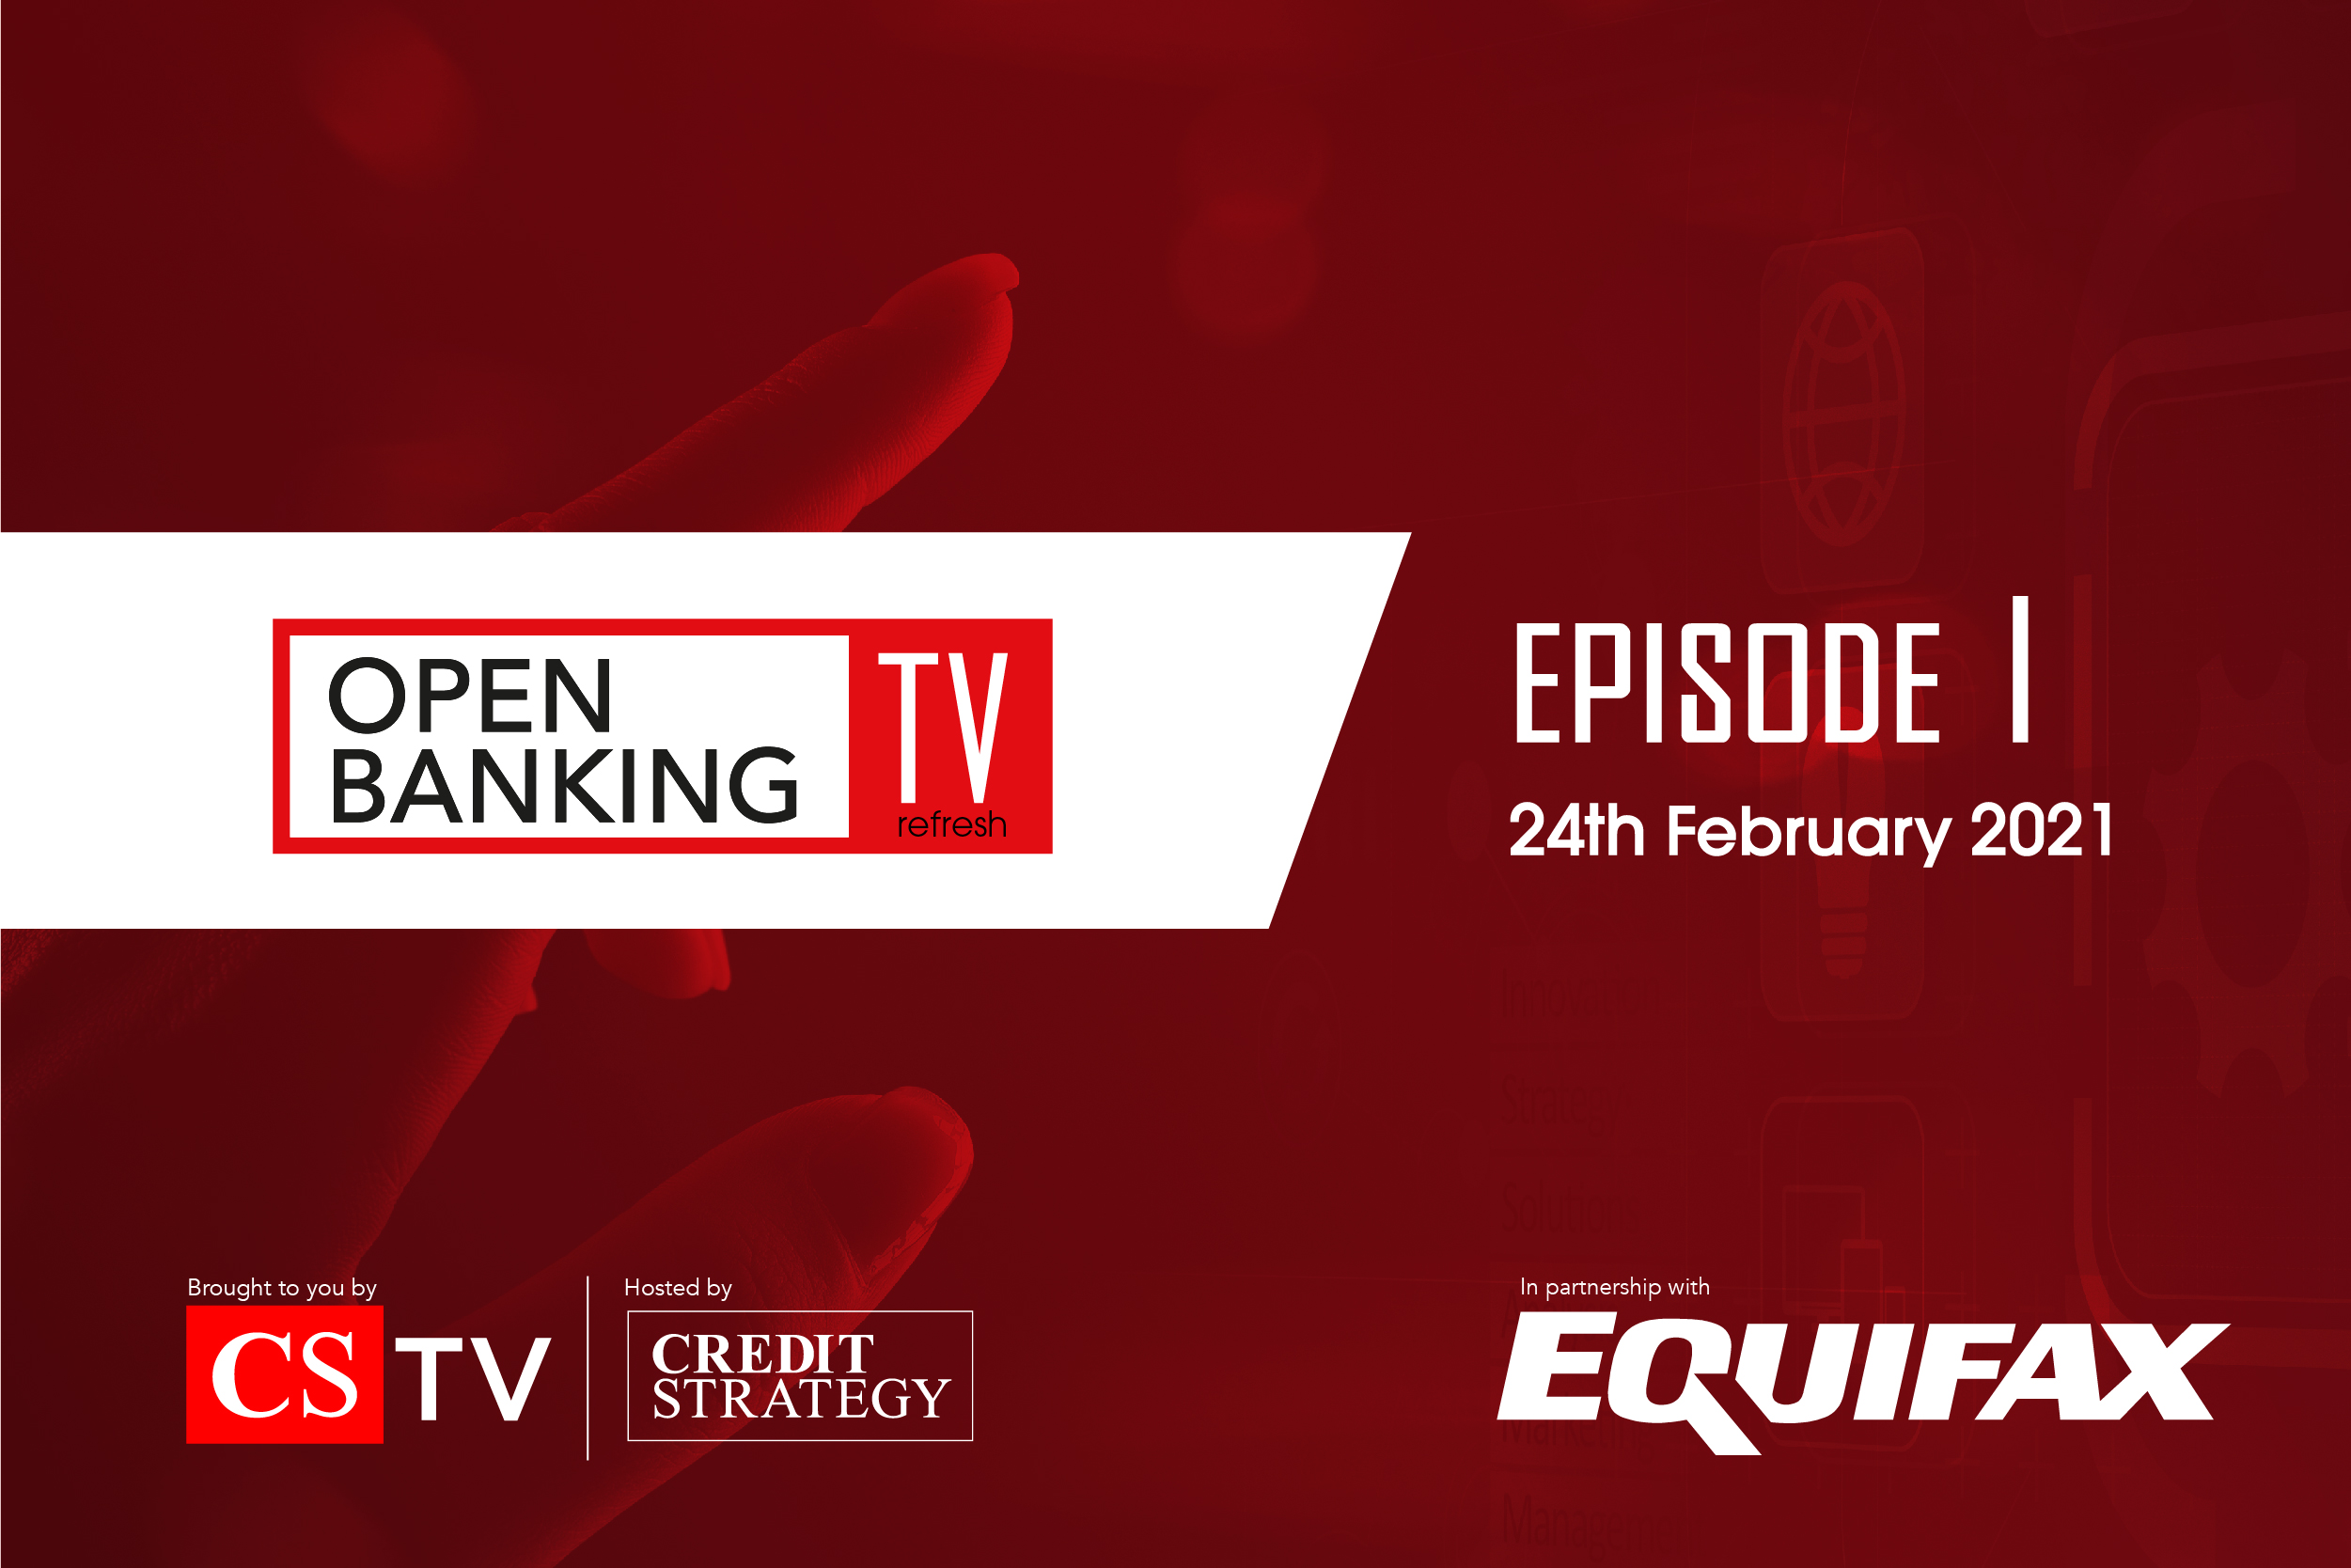 Open Banking TV Refresh - Using Open Banking to Help the Most Vulnerable / The Acceleration of Digital Transformation